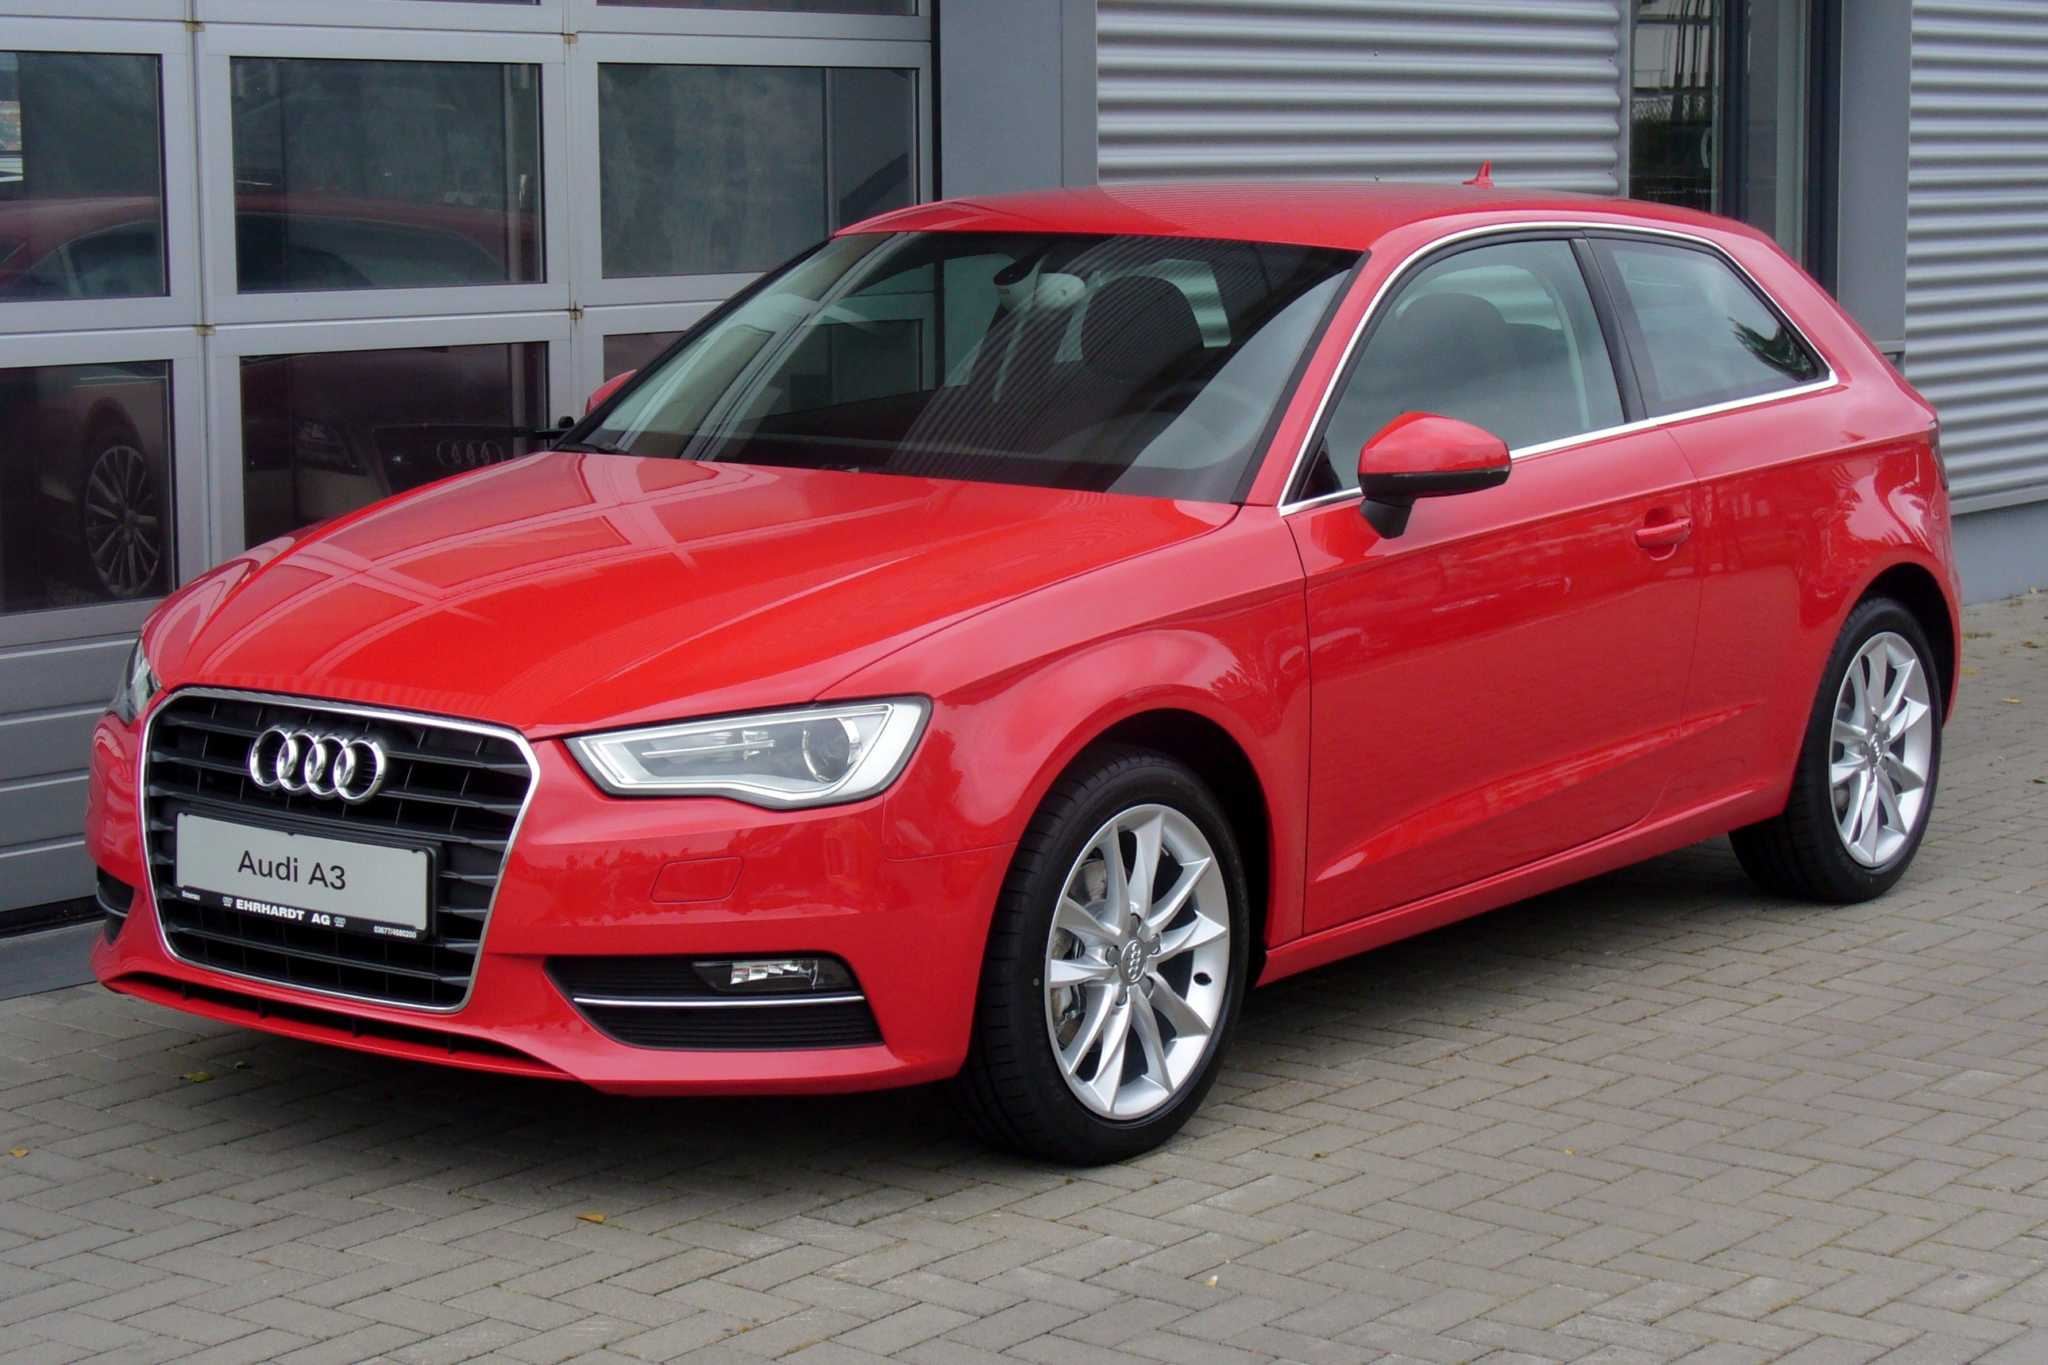 Audi A3 Specifications 2014 Audi A3 Price In India